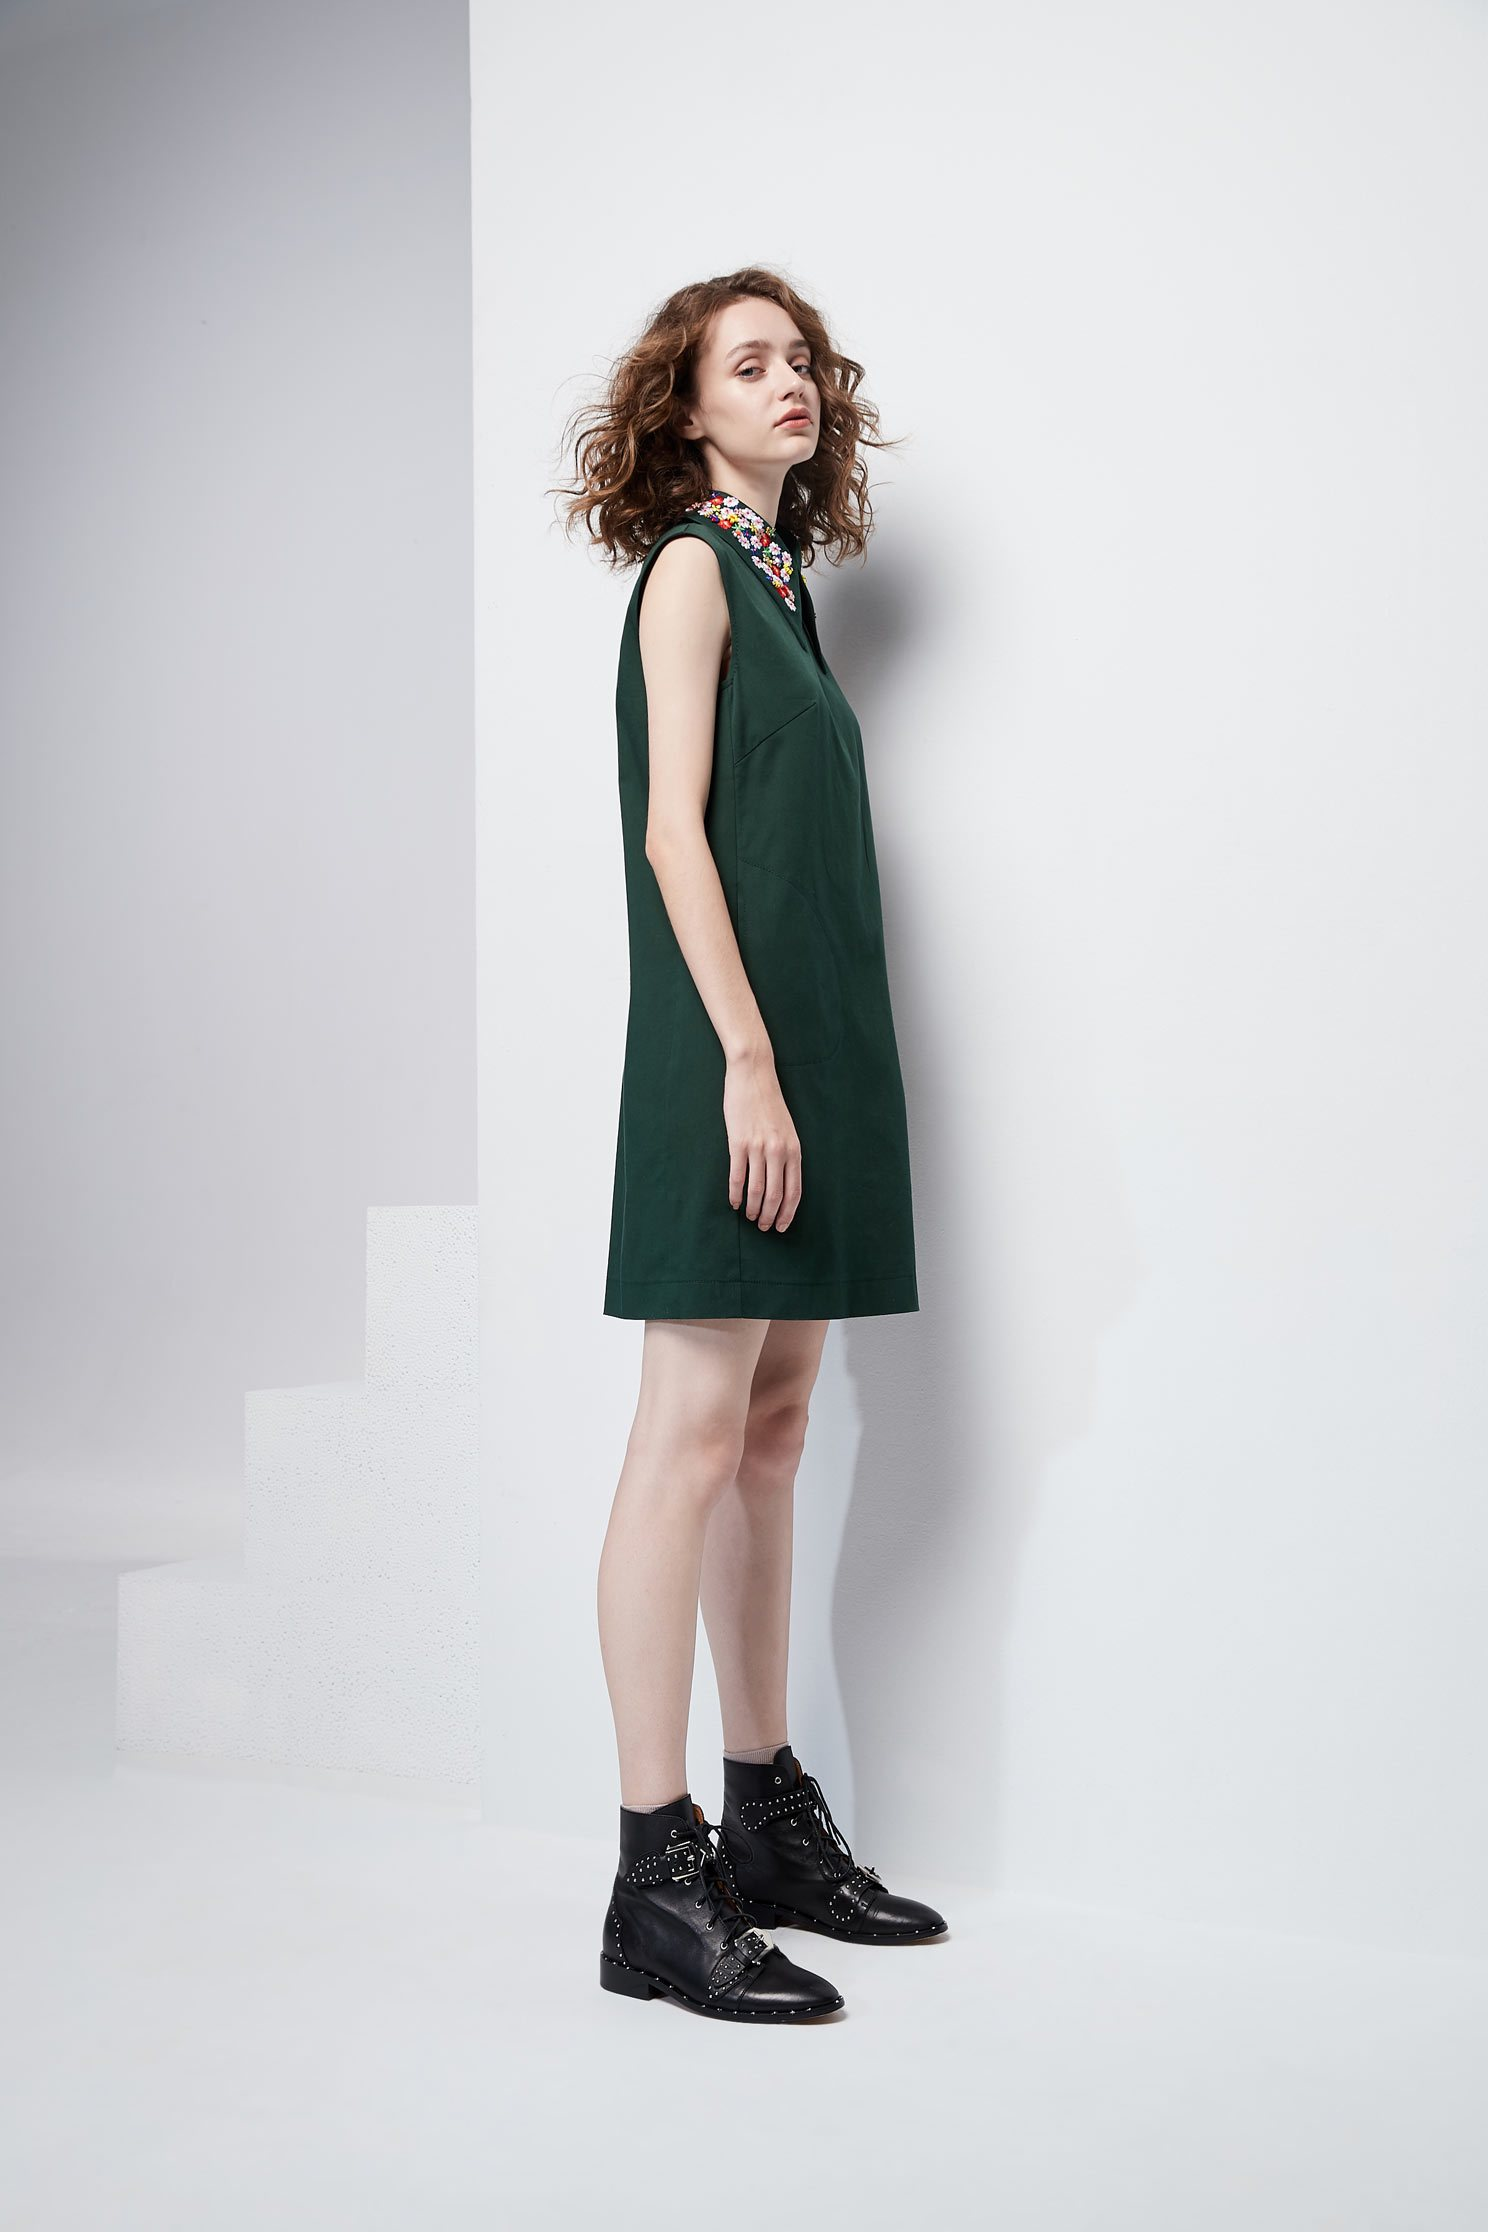 Sparkling collars sleeveless dress.,dress,embroidery,embroiderddress,cocktaildress,sleevelessdress,embroidered